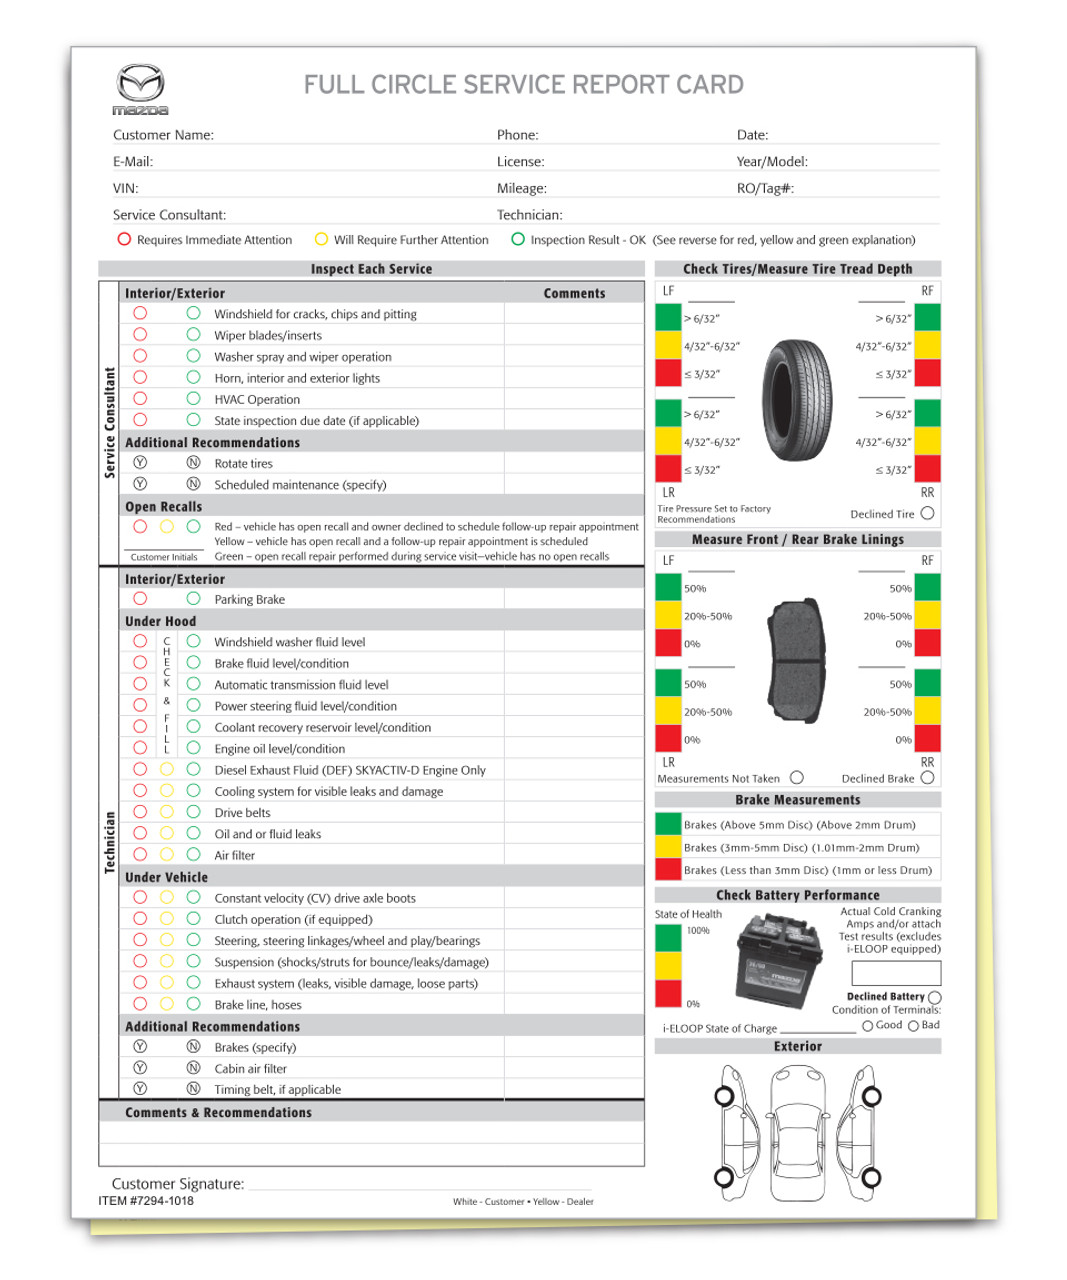 Manufacturer Specific - Mazda Multi-Point Inspection 2 Part Form (Form-#7294-1018)